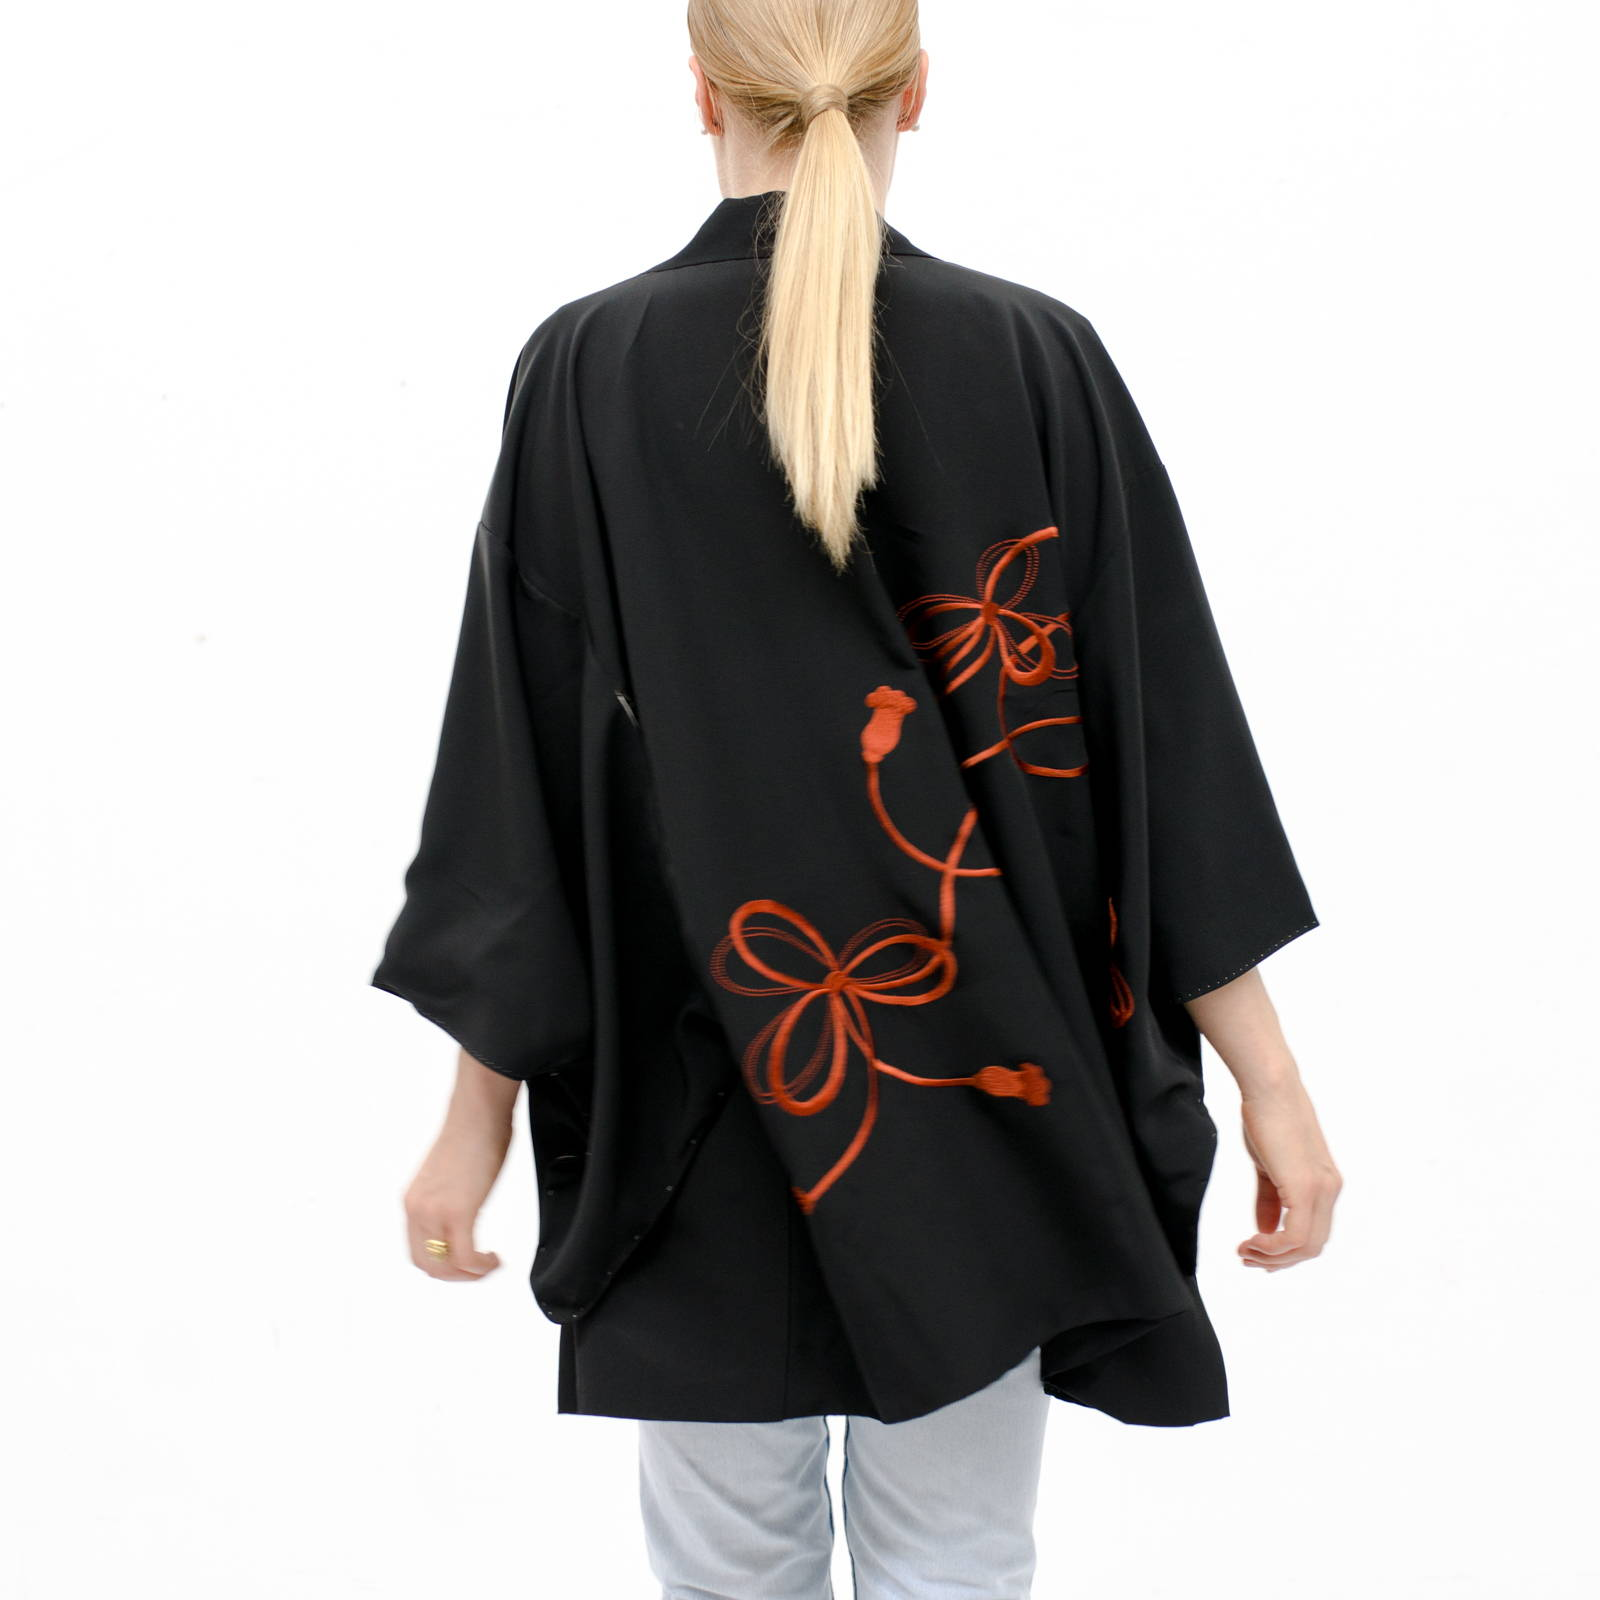 Kimono Jacket - Haori - Hand Embroidered Black Silk